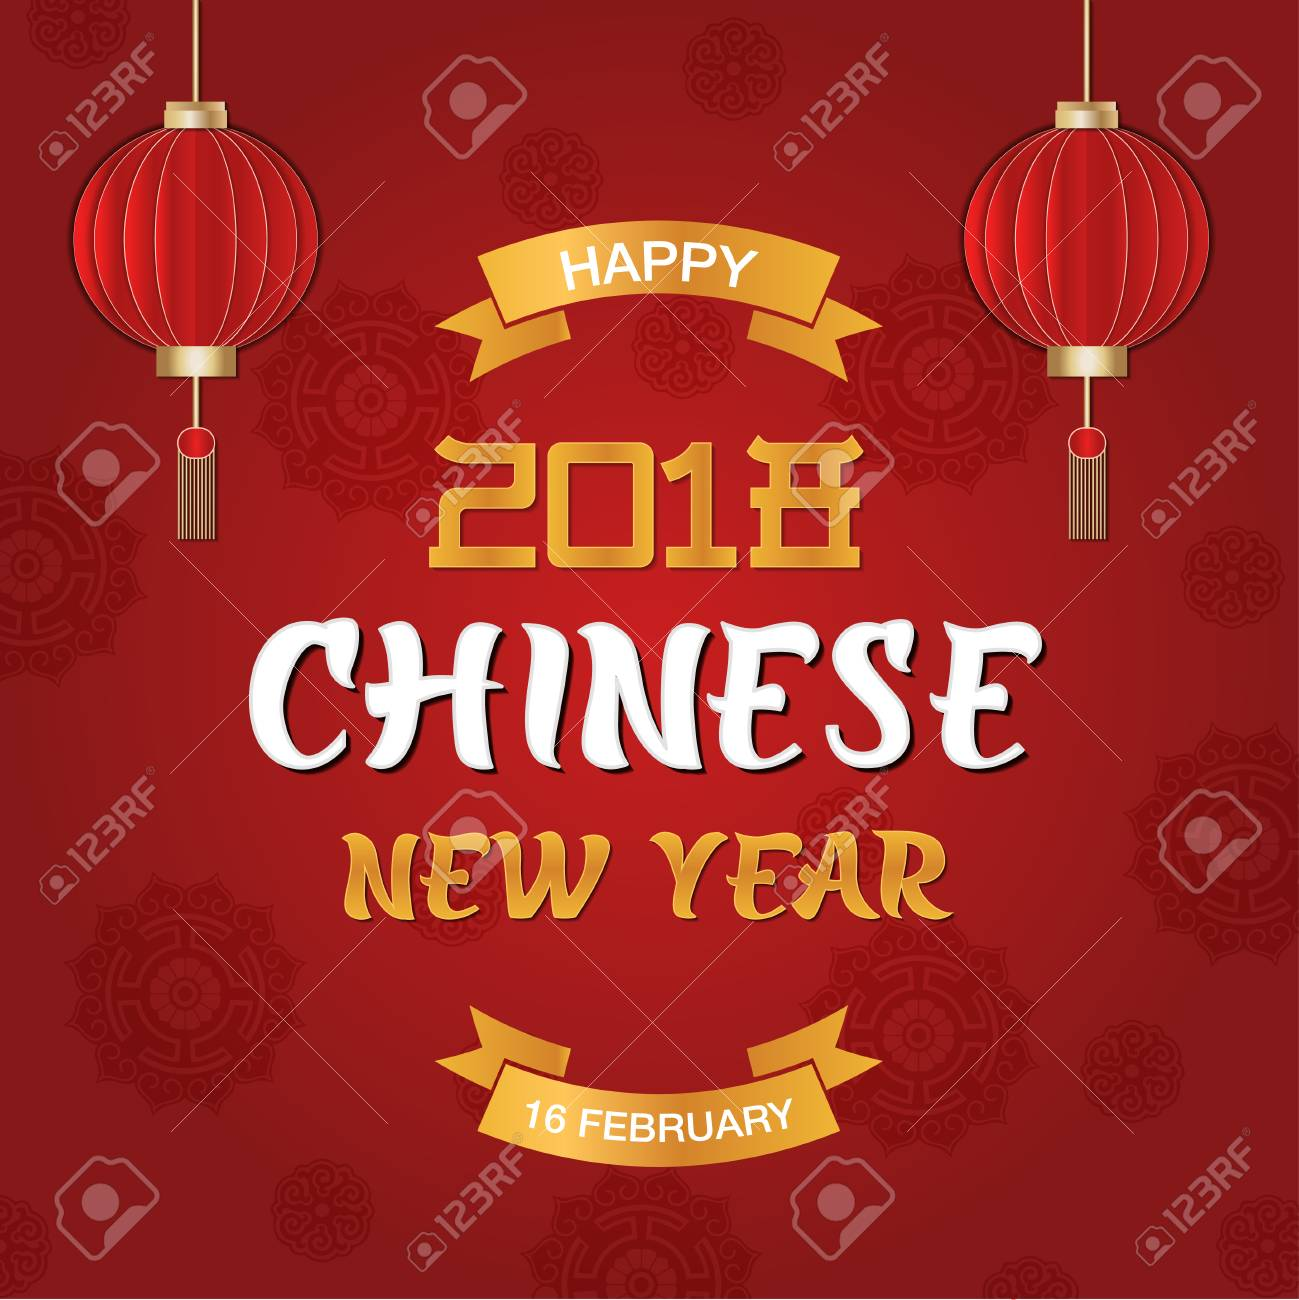 happy chinese new year party festive card design wiht banners and lanterns on red background